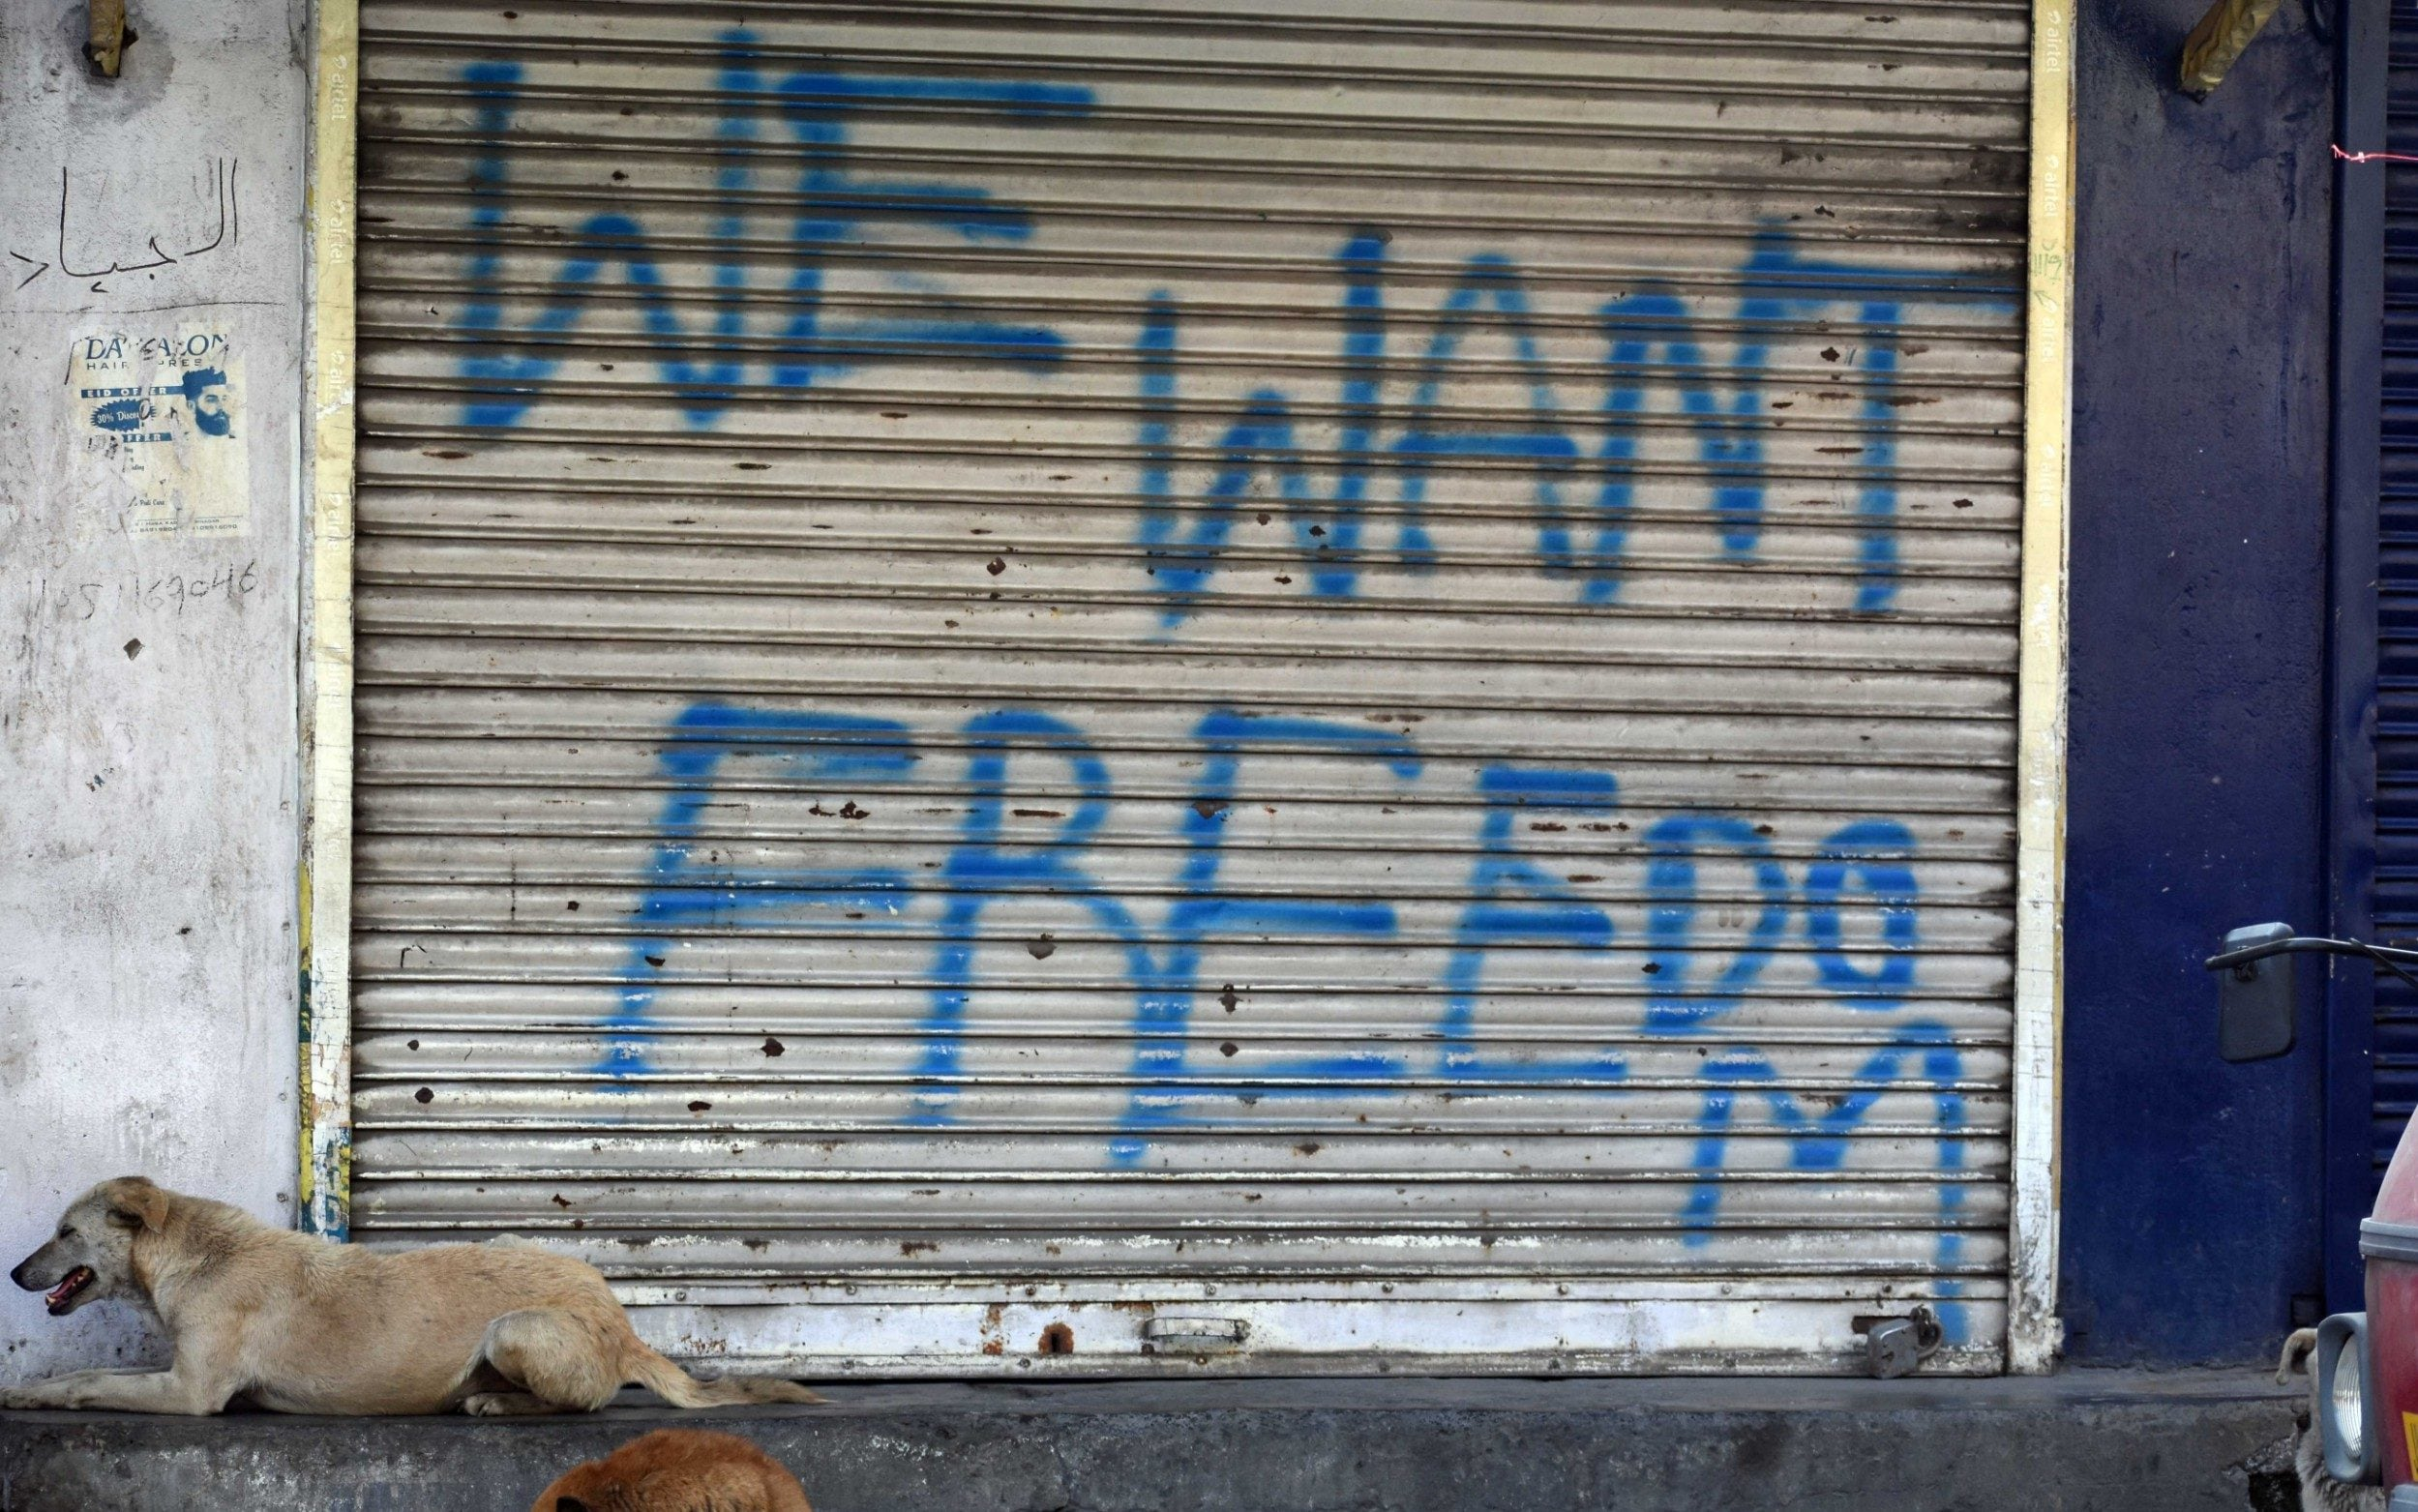 Young boys tortured in Kashmir clampdown as new figures show 13,000 teenagers arrested